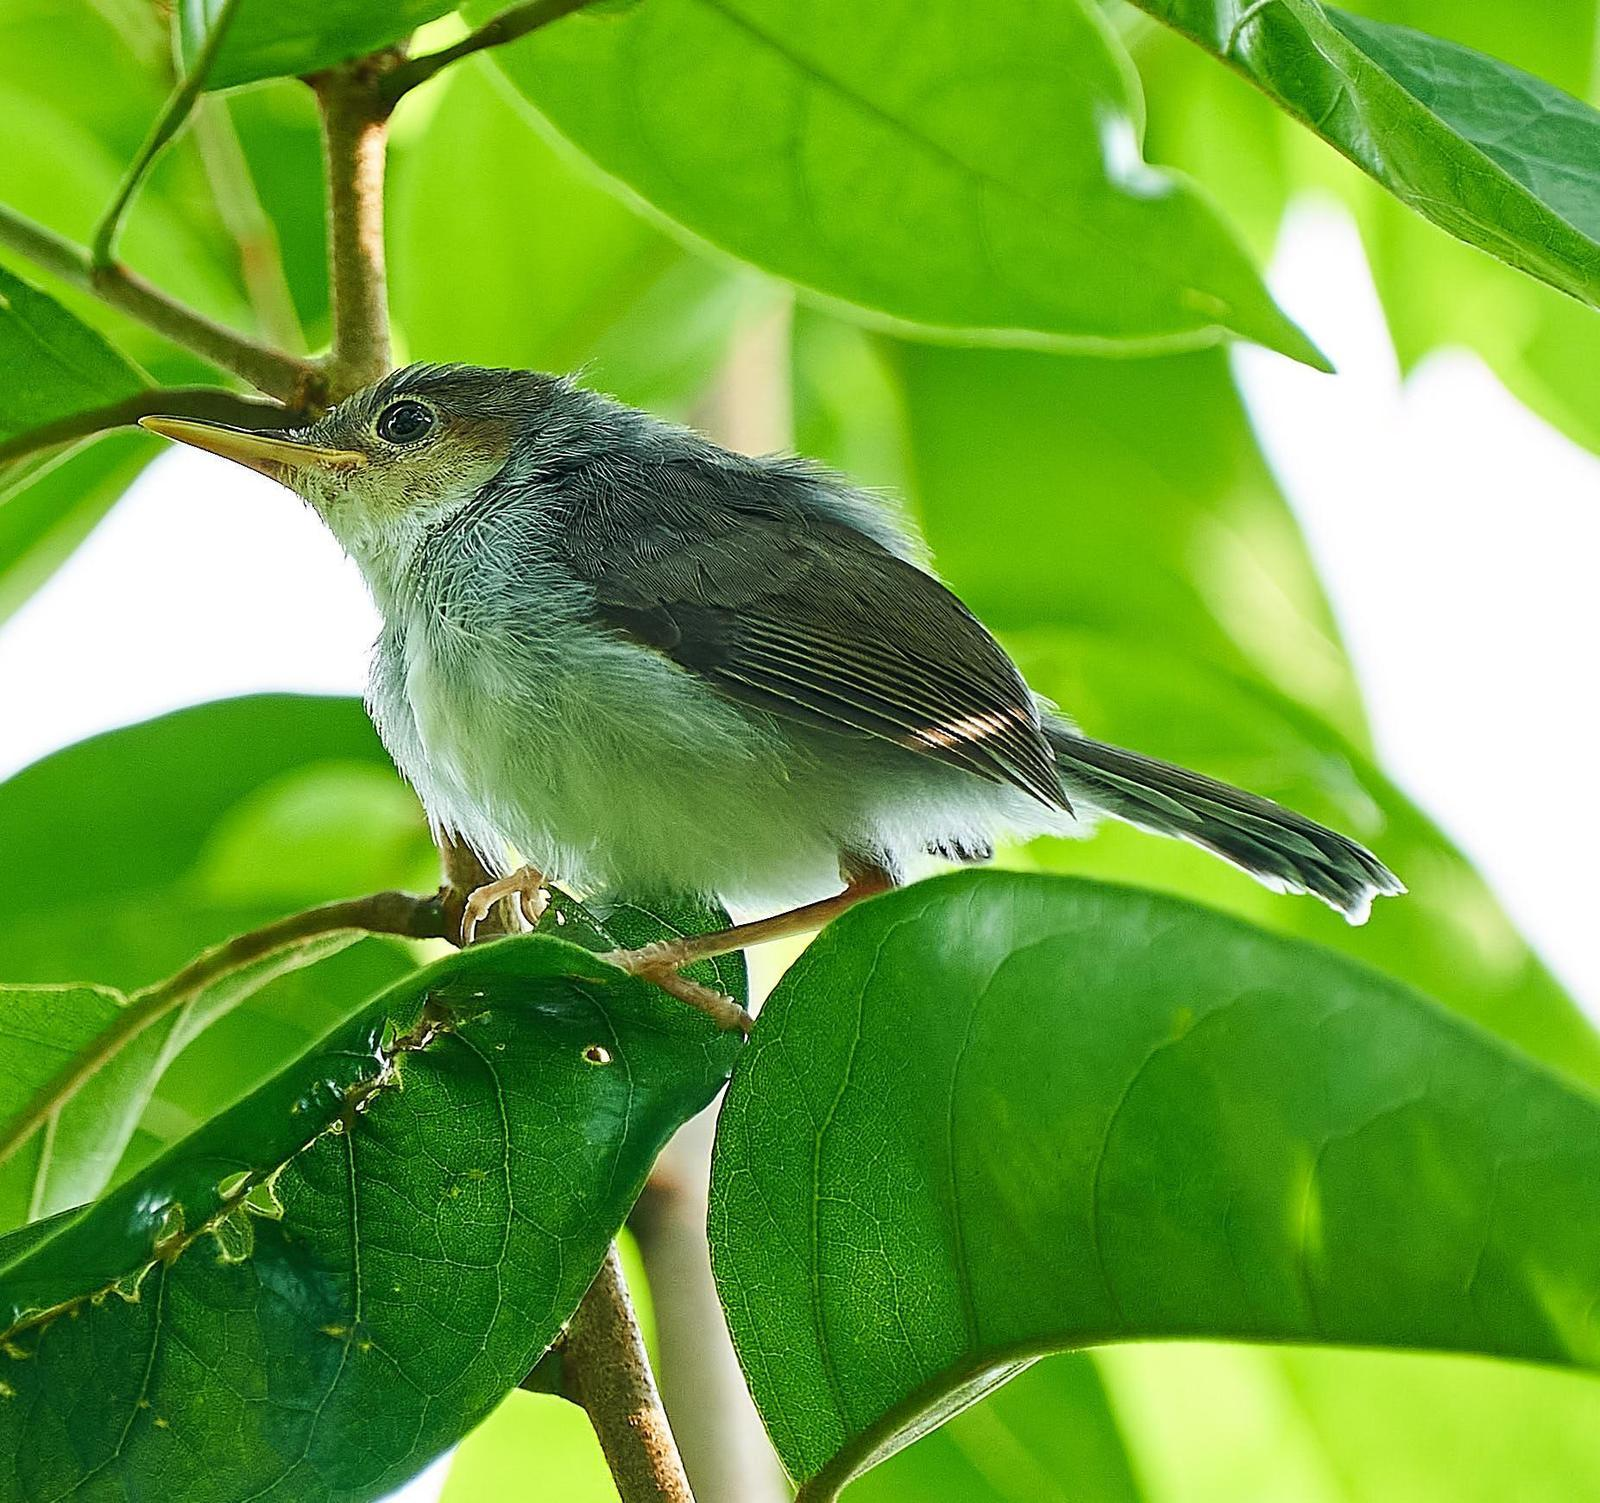 Ashy Tailorbird Photo by Steven Cheong